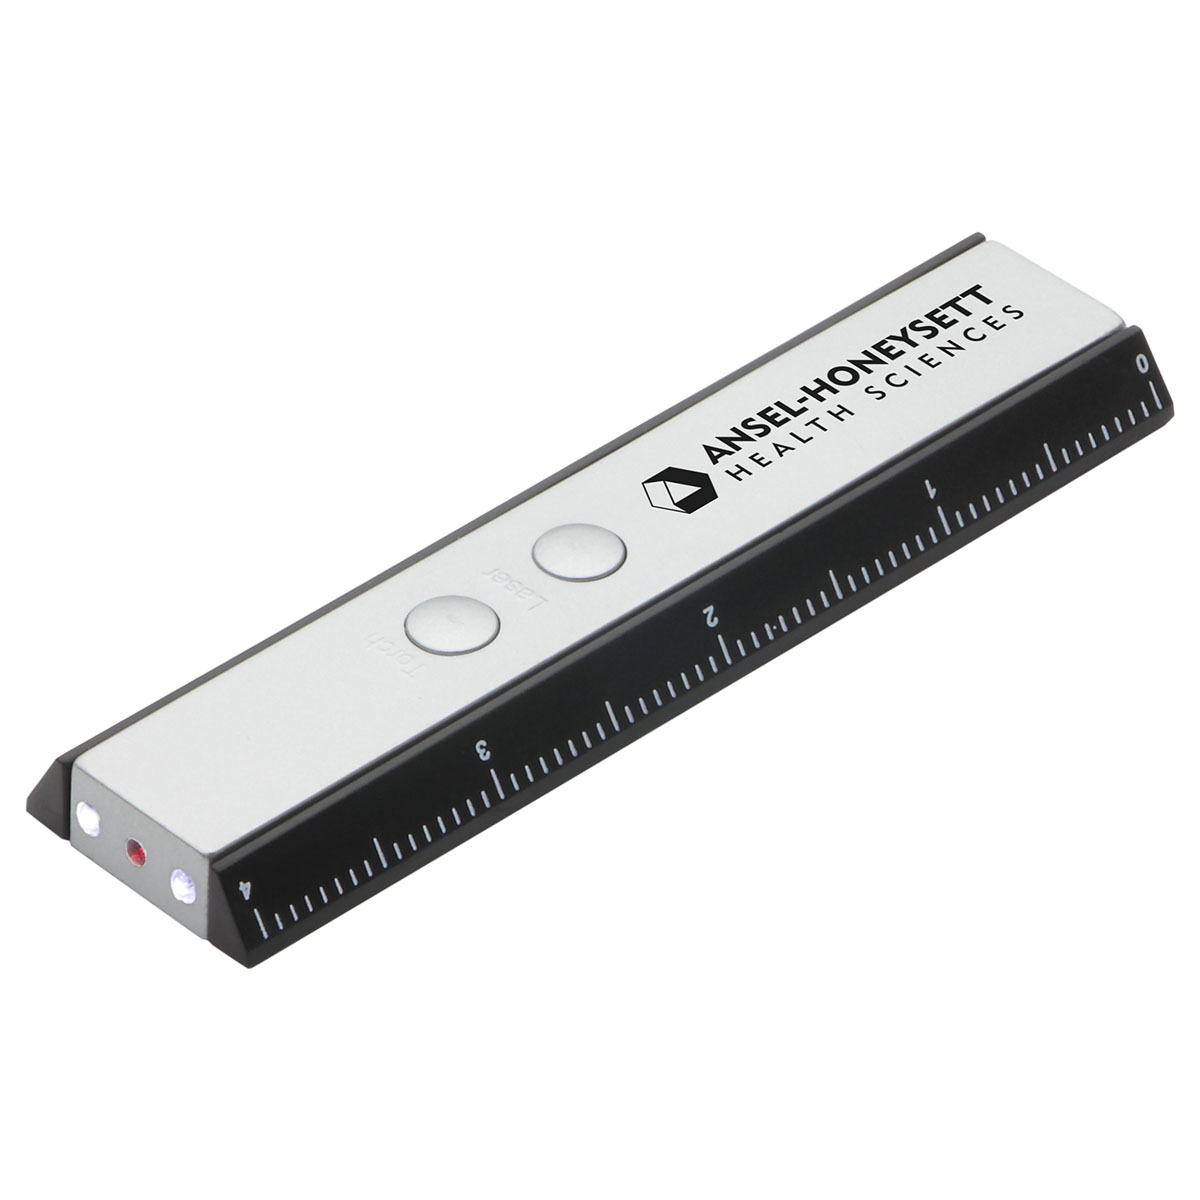 Light-N-Laser Ruler, WOF-LL13 - 1 Colour Imprint